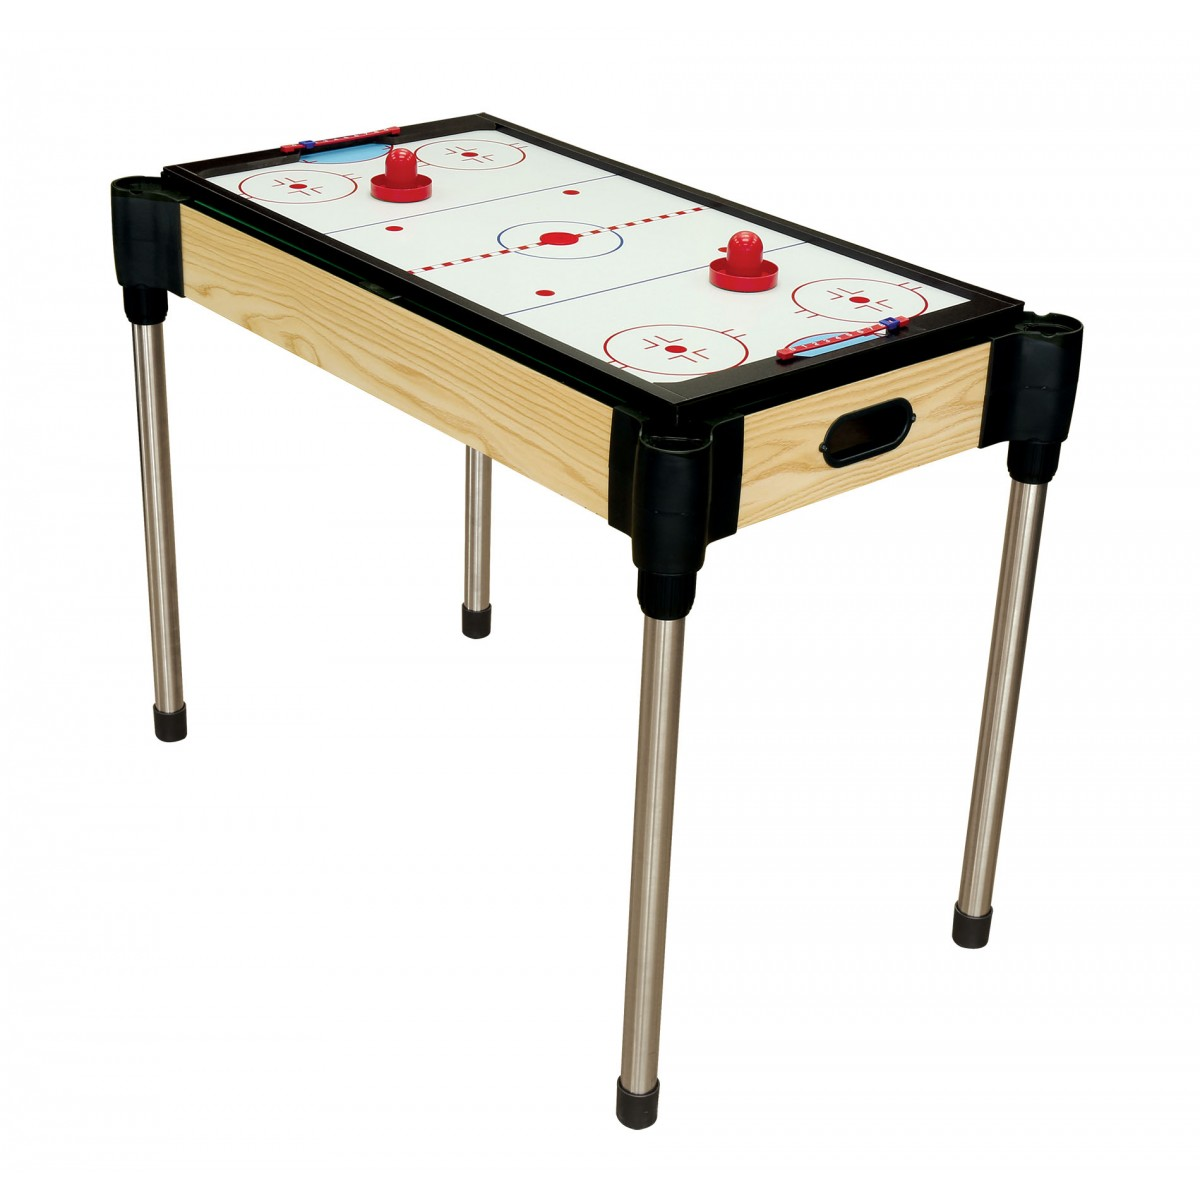 36 92cm 10 in 1 games table pool basketball table for 10 in 1 table game